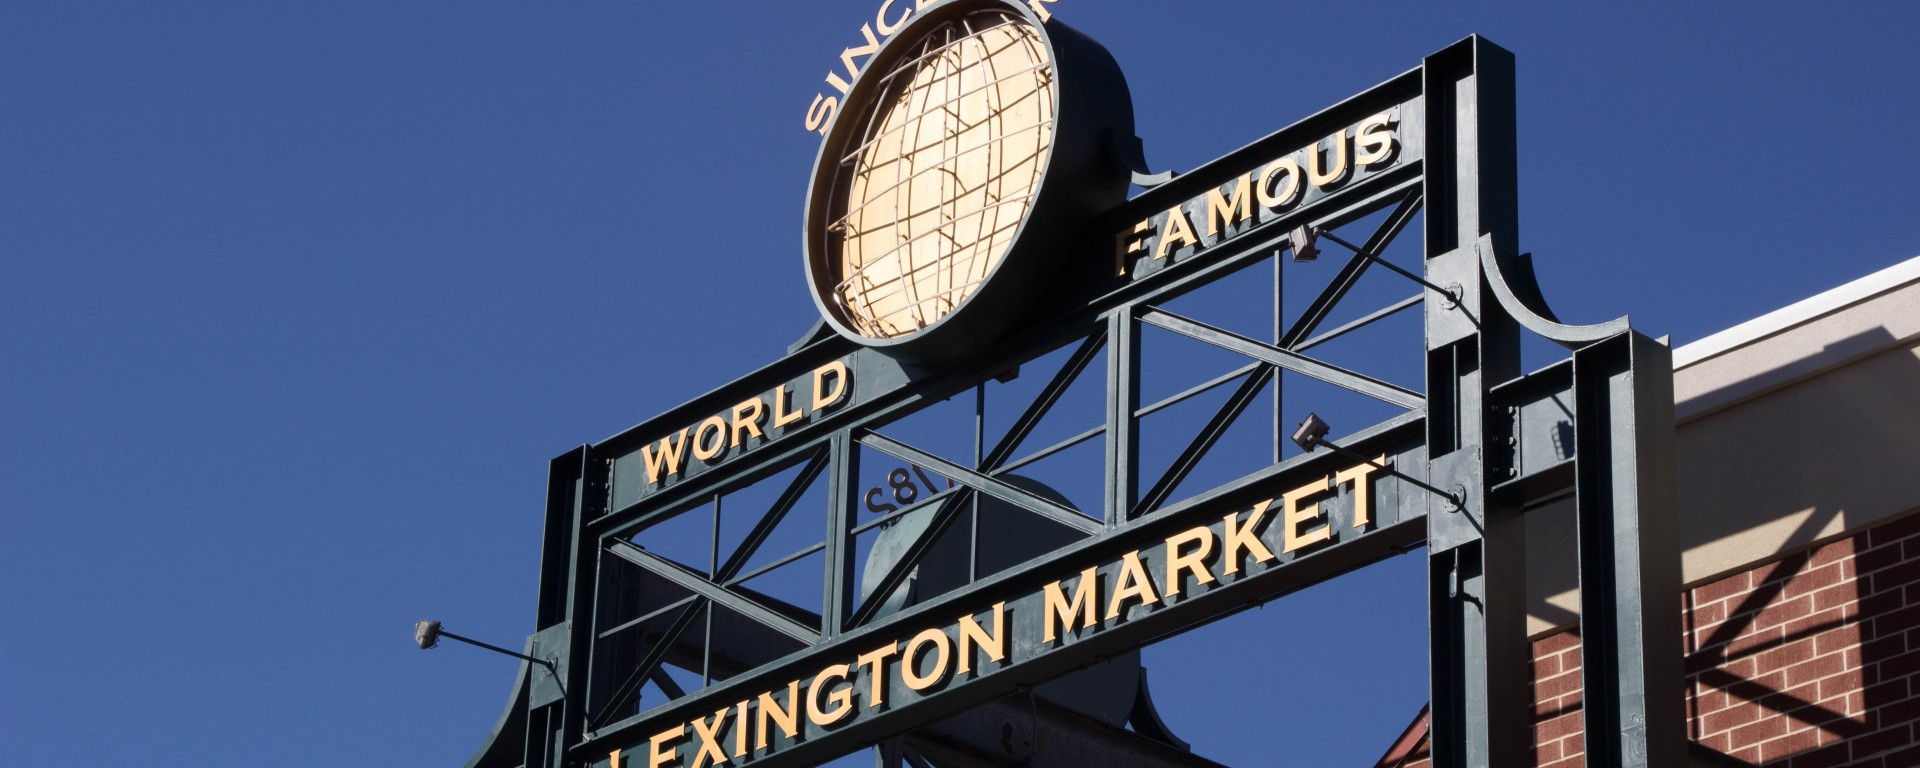 Lexington Market.